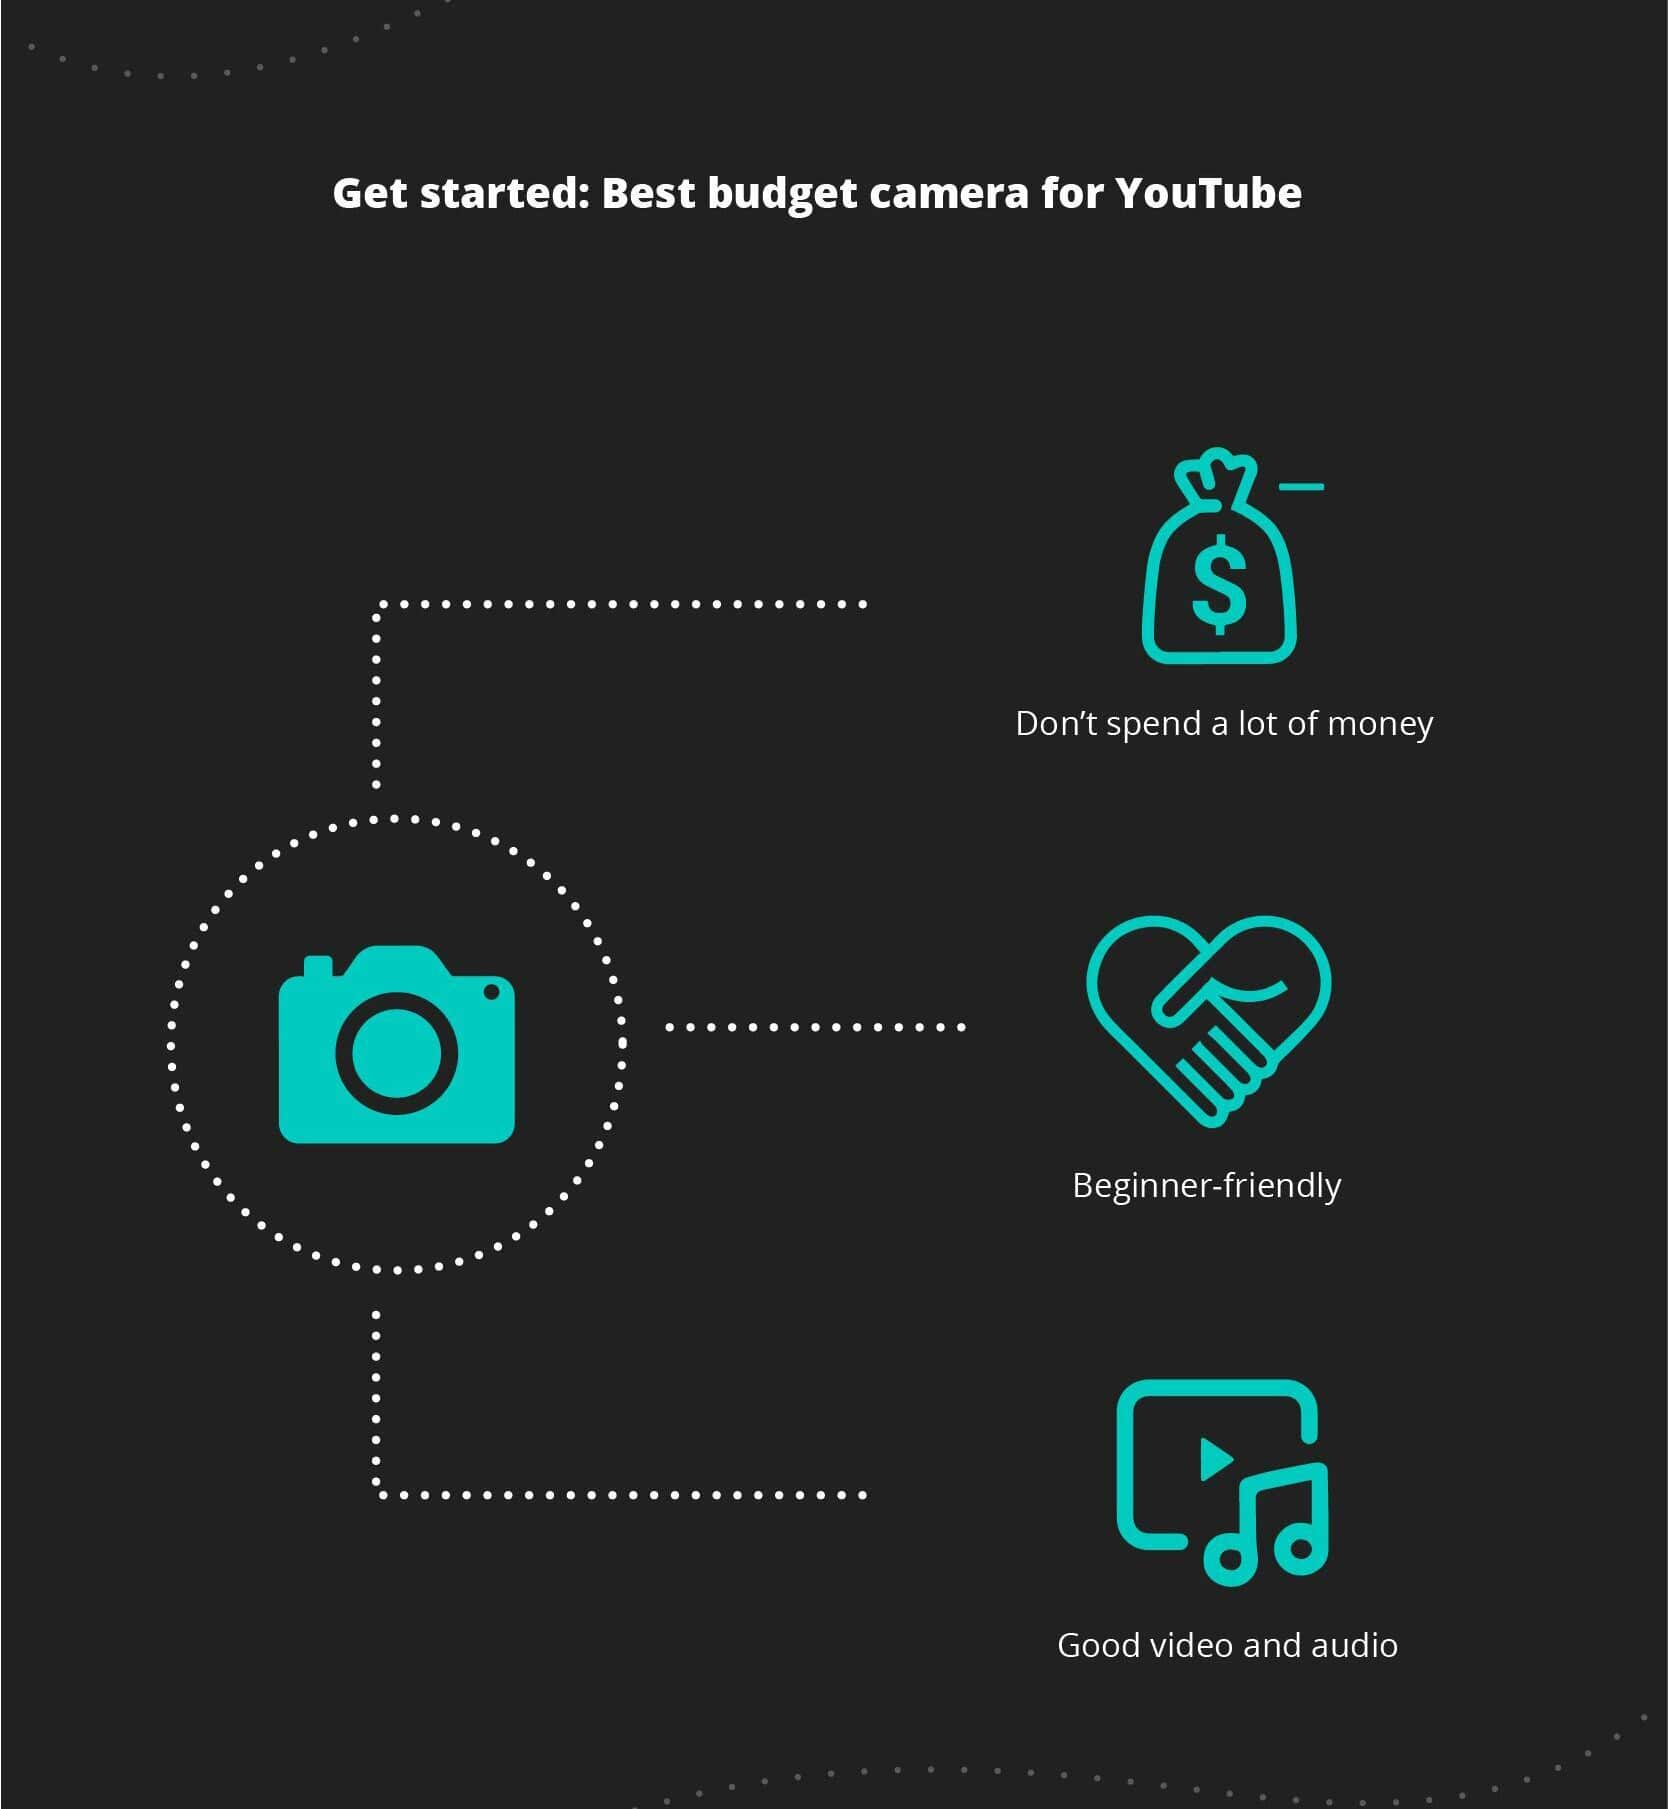 Best budget camera for YouTube